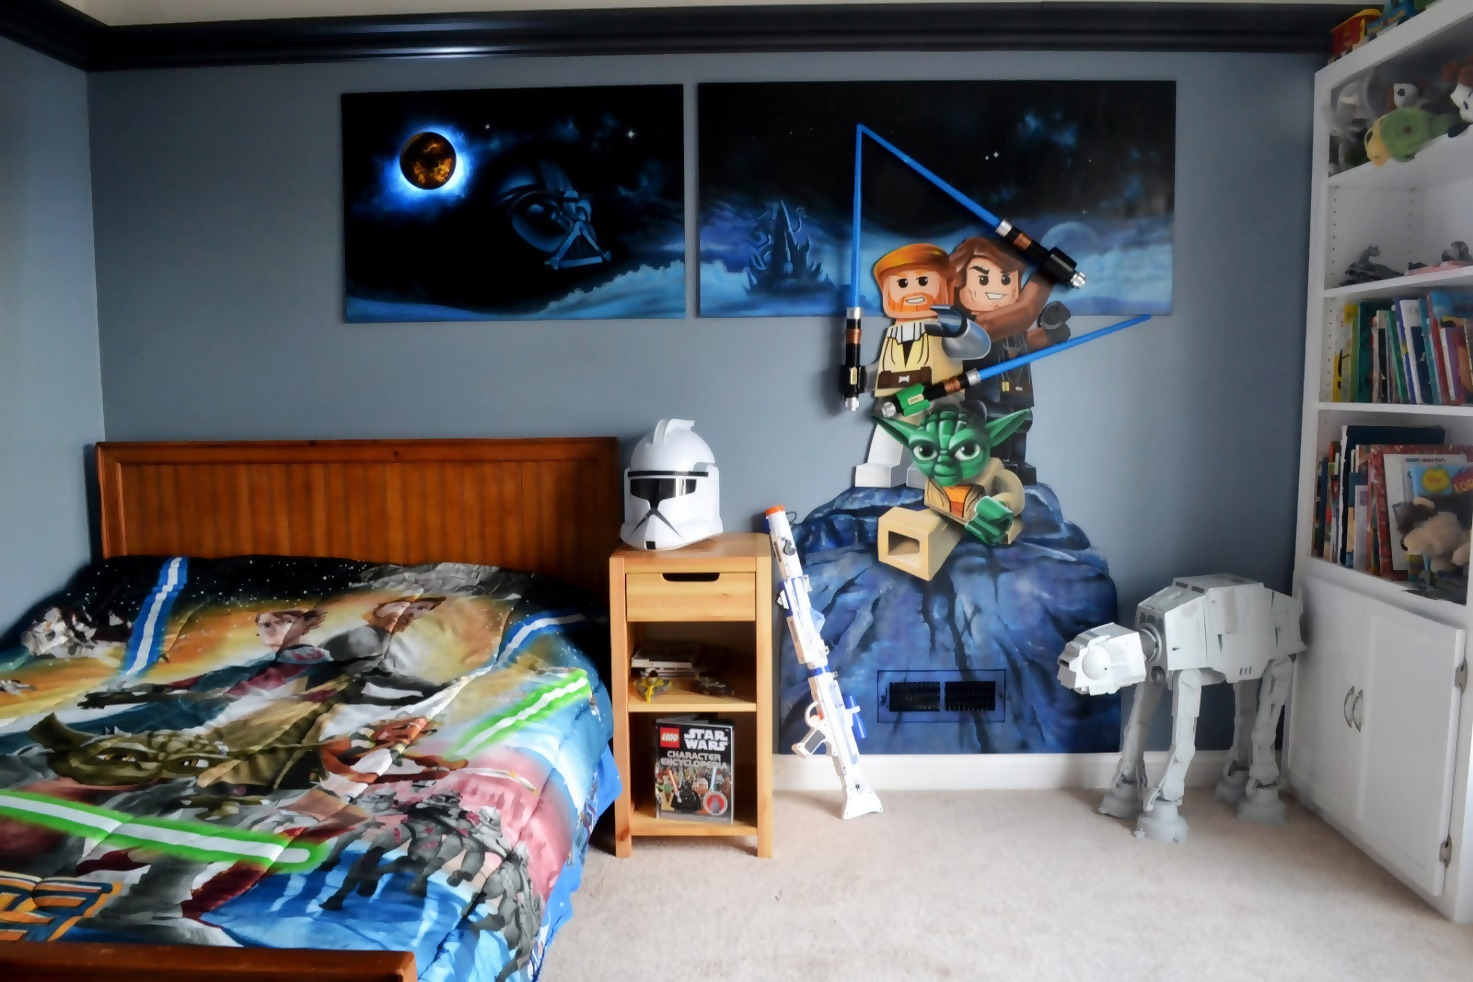 Cool Star Wars Bedroom Décor Ideas